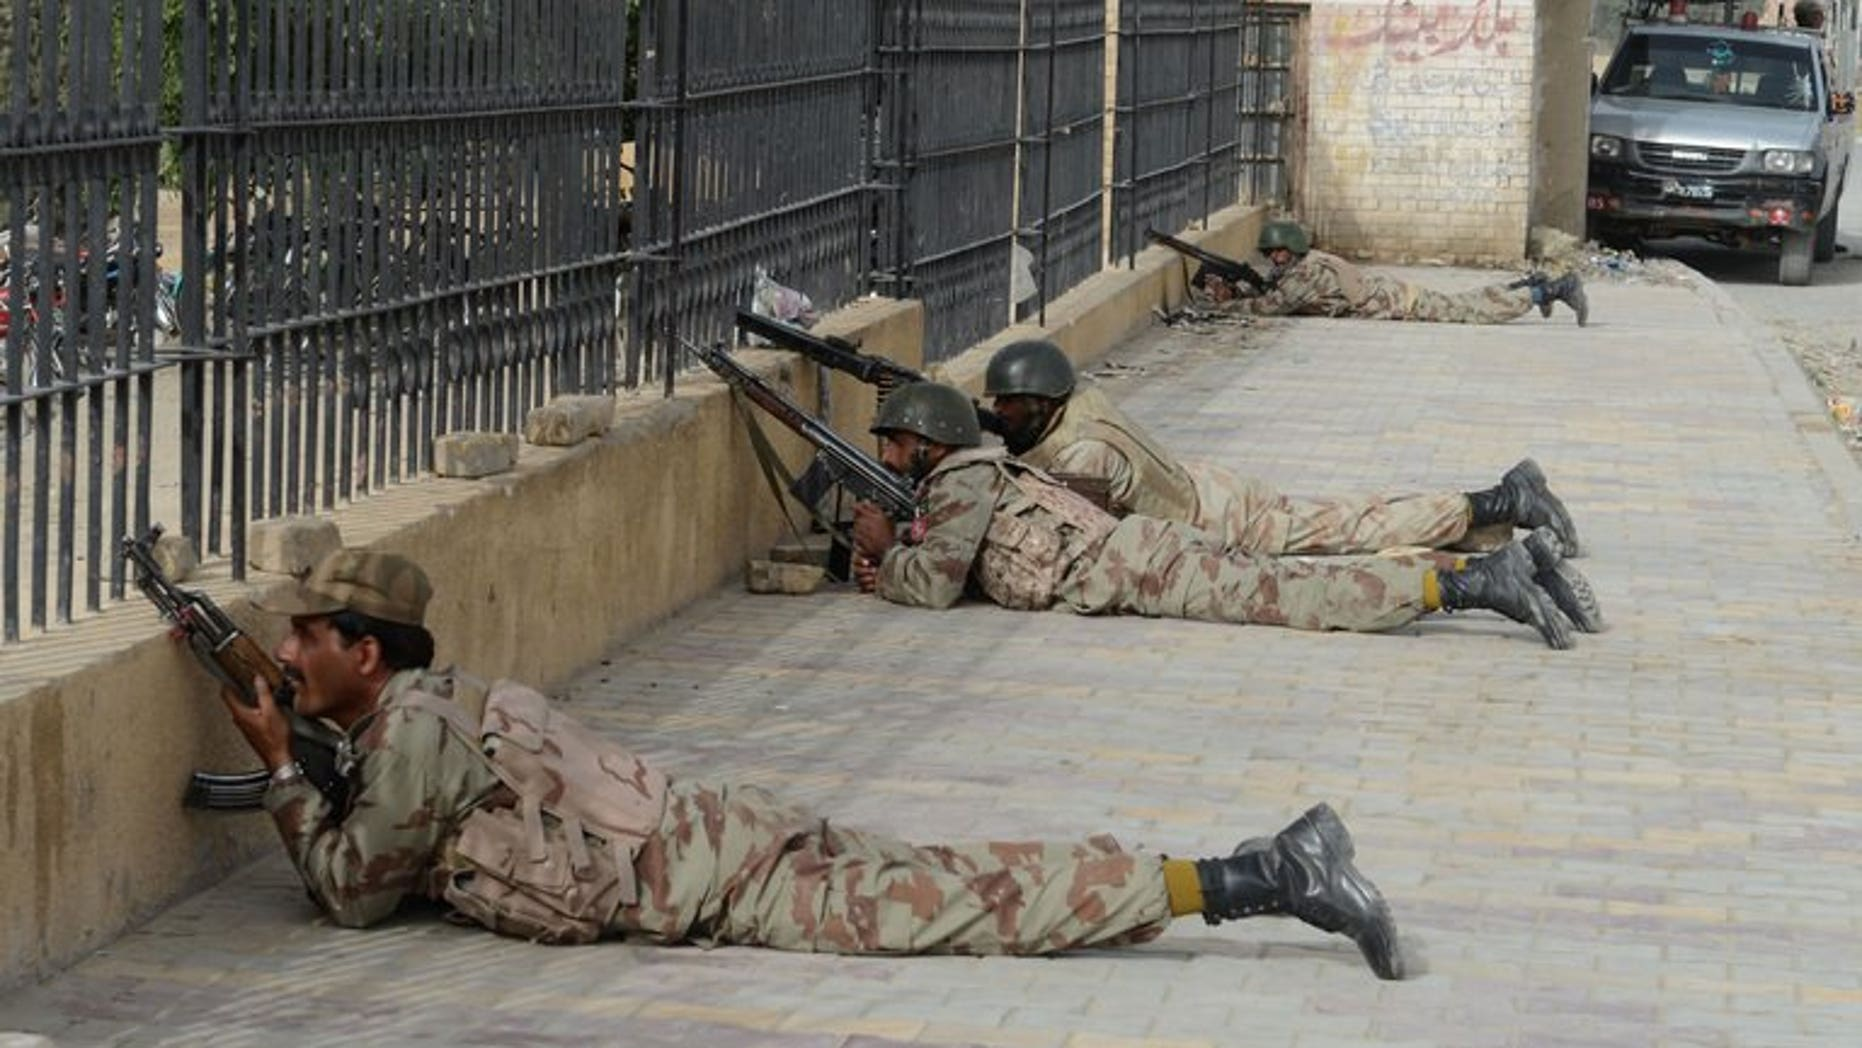 Pakistani paramilitary soldiers take position in Quetta, the capital of Baluchistan province, on June 15, 2013. Paramilitary forces Tuesday seized more than 100 tonnes of bomb-making chemicals from a truck and a compound in southwest Pakistan and detained 10 suspects, officials said.